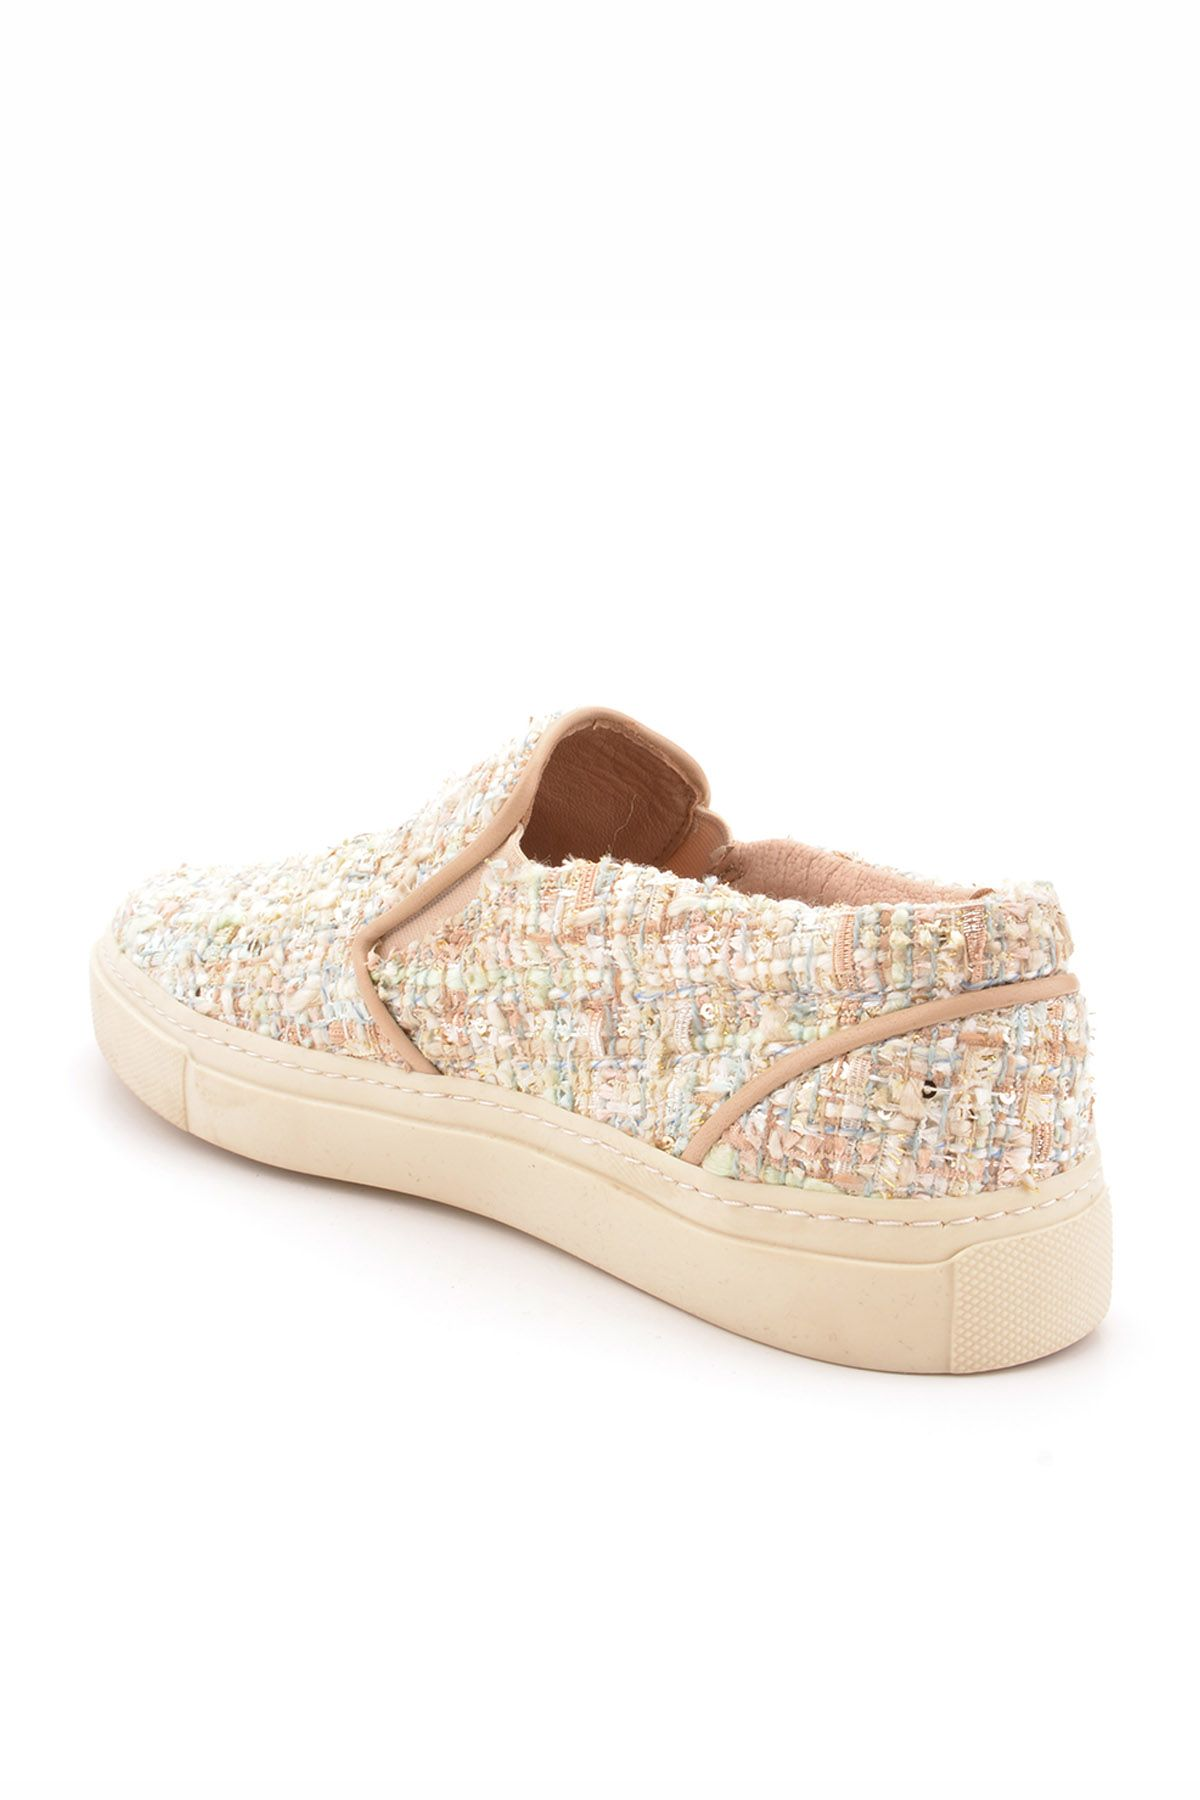 Pegia Women Sneakers From Genuine Leather Covered With The Chanel Cloth Cream